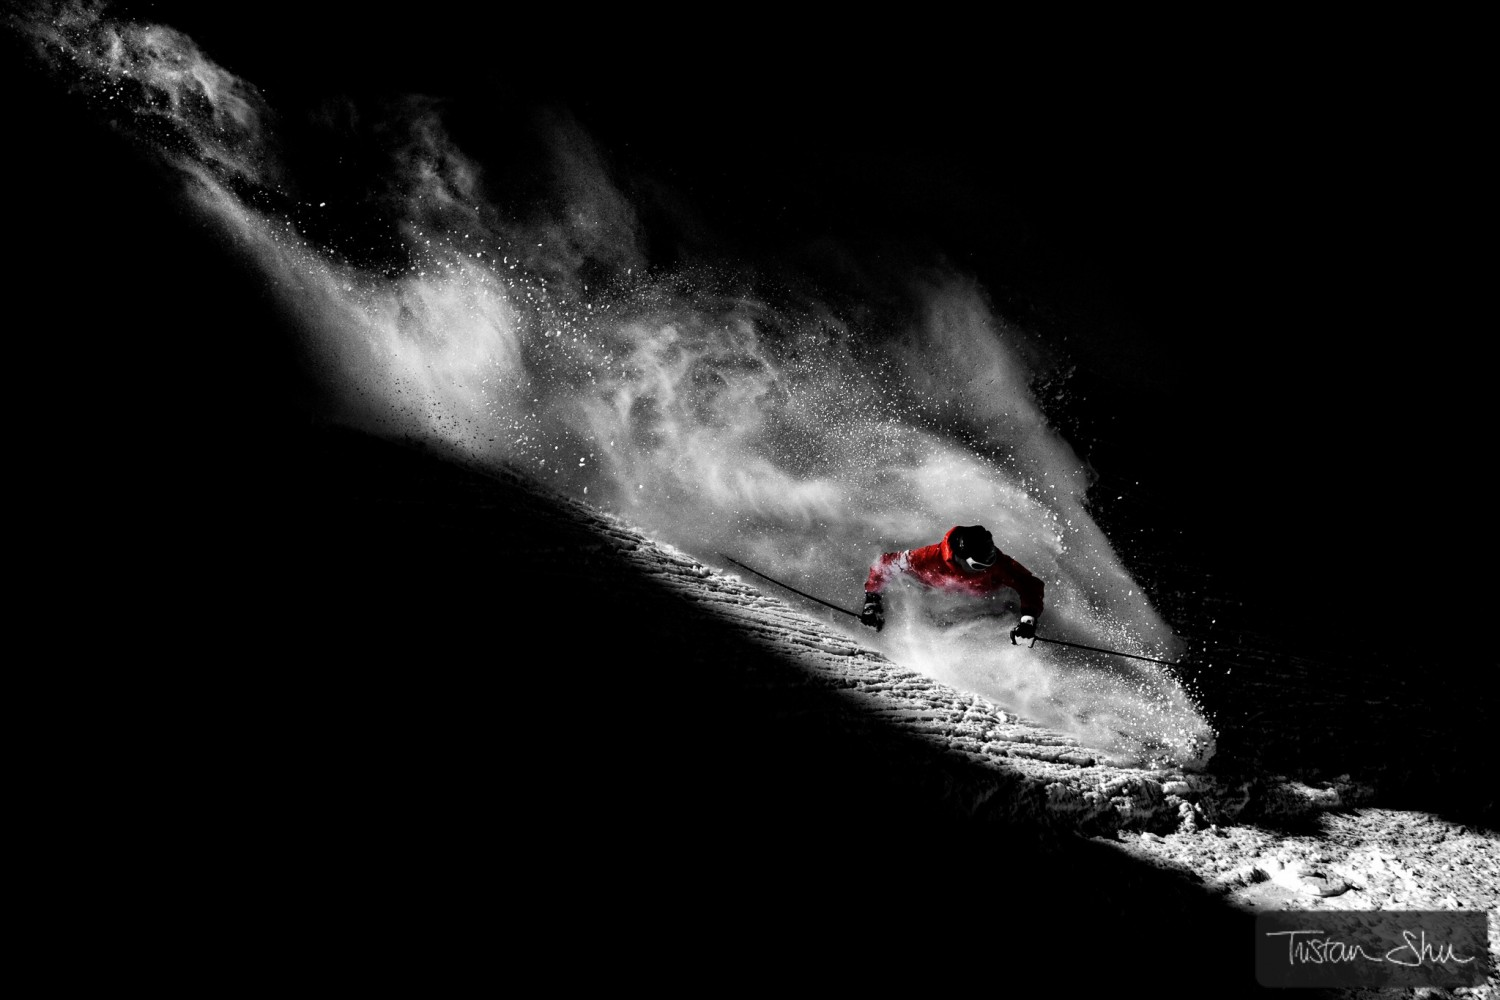 10 Action/Sport Photographers You Need to Follow Right Now